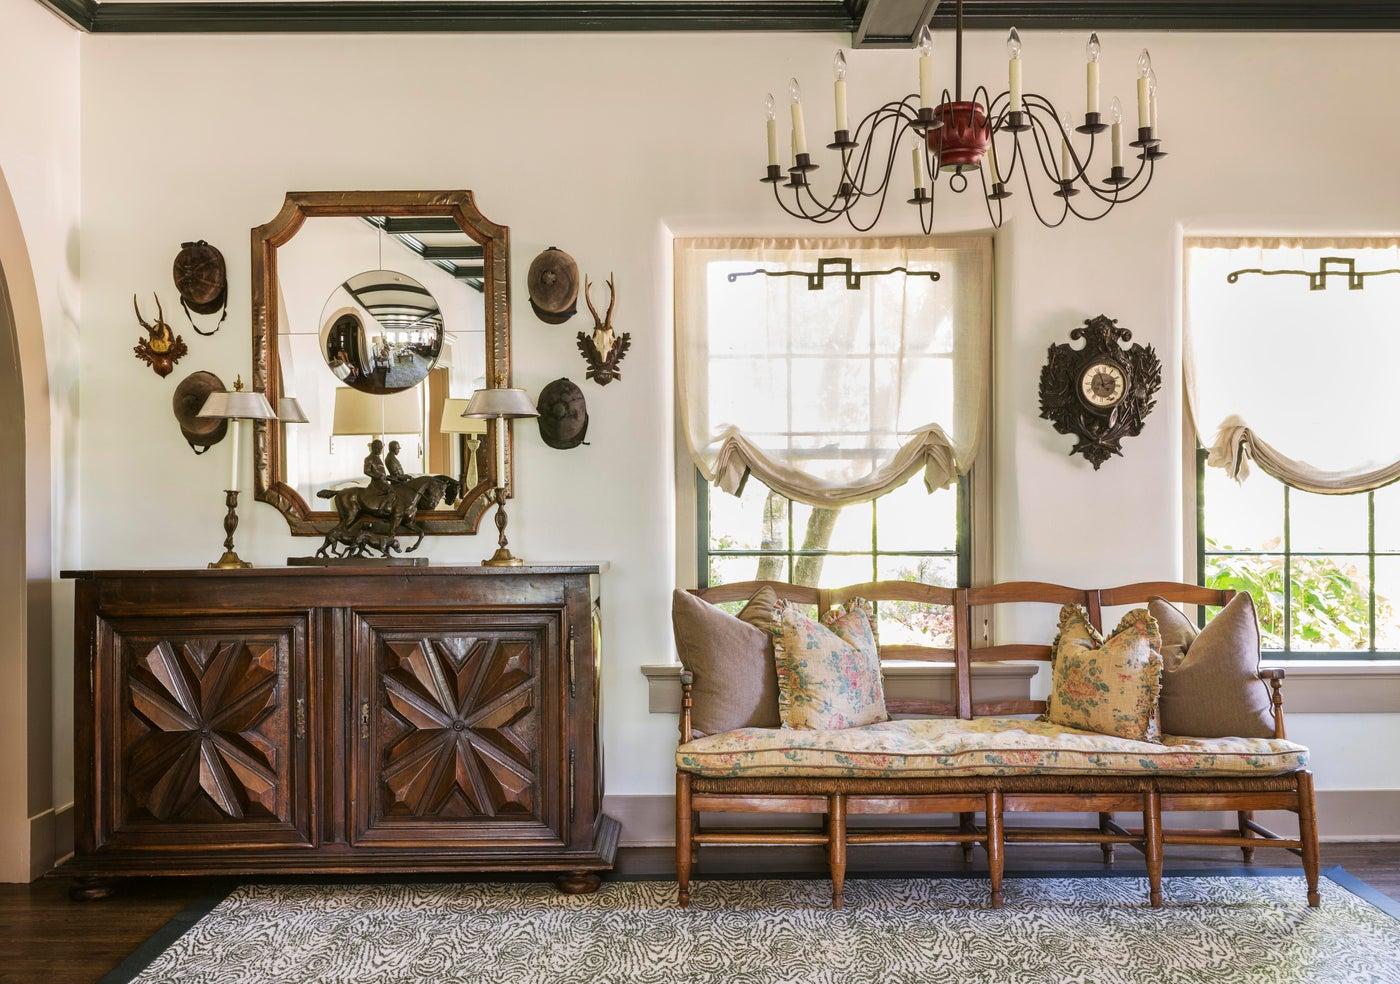 Foyer featuring collection of riding hats and mounts, with an antique bench